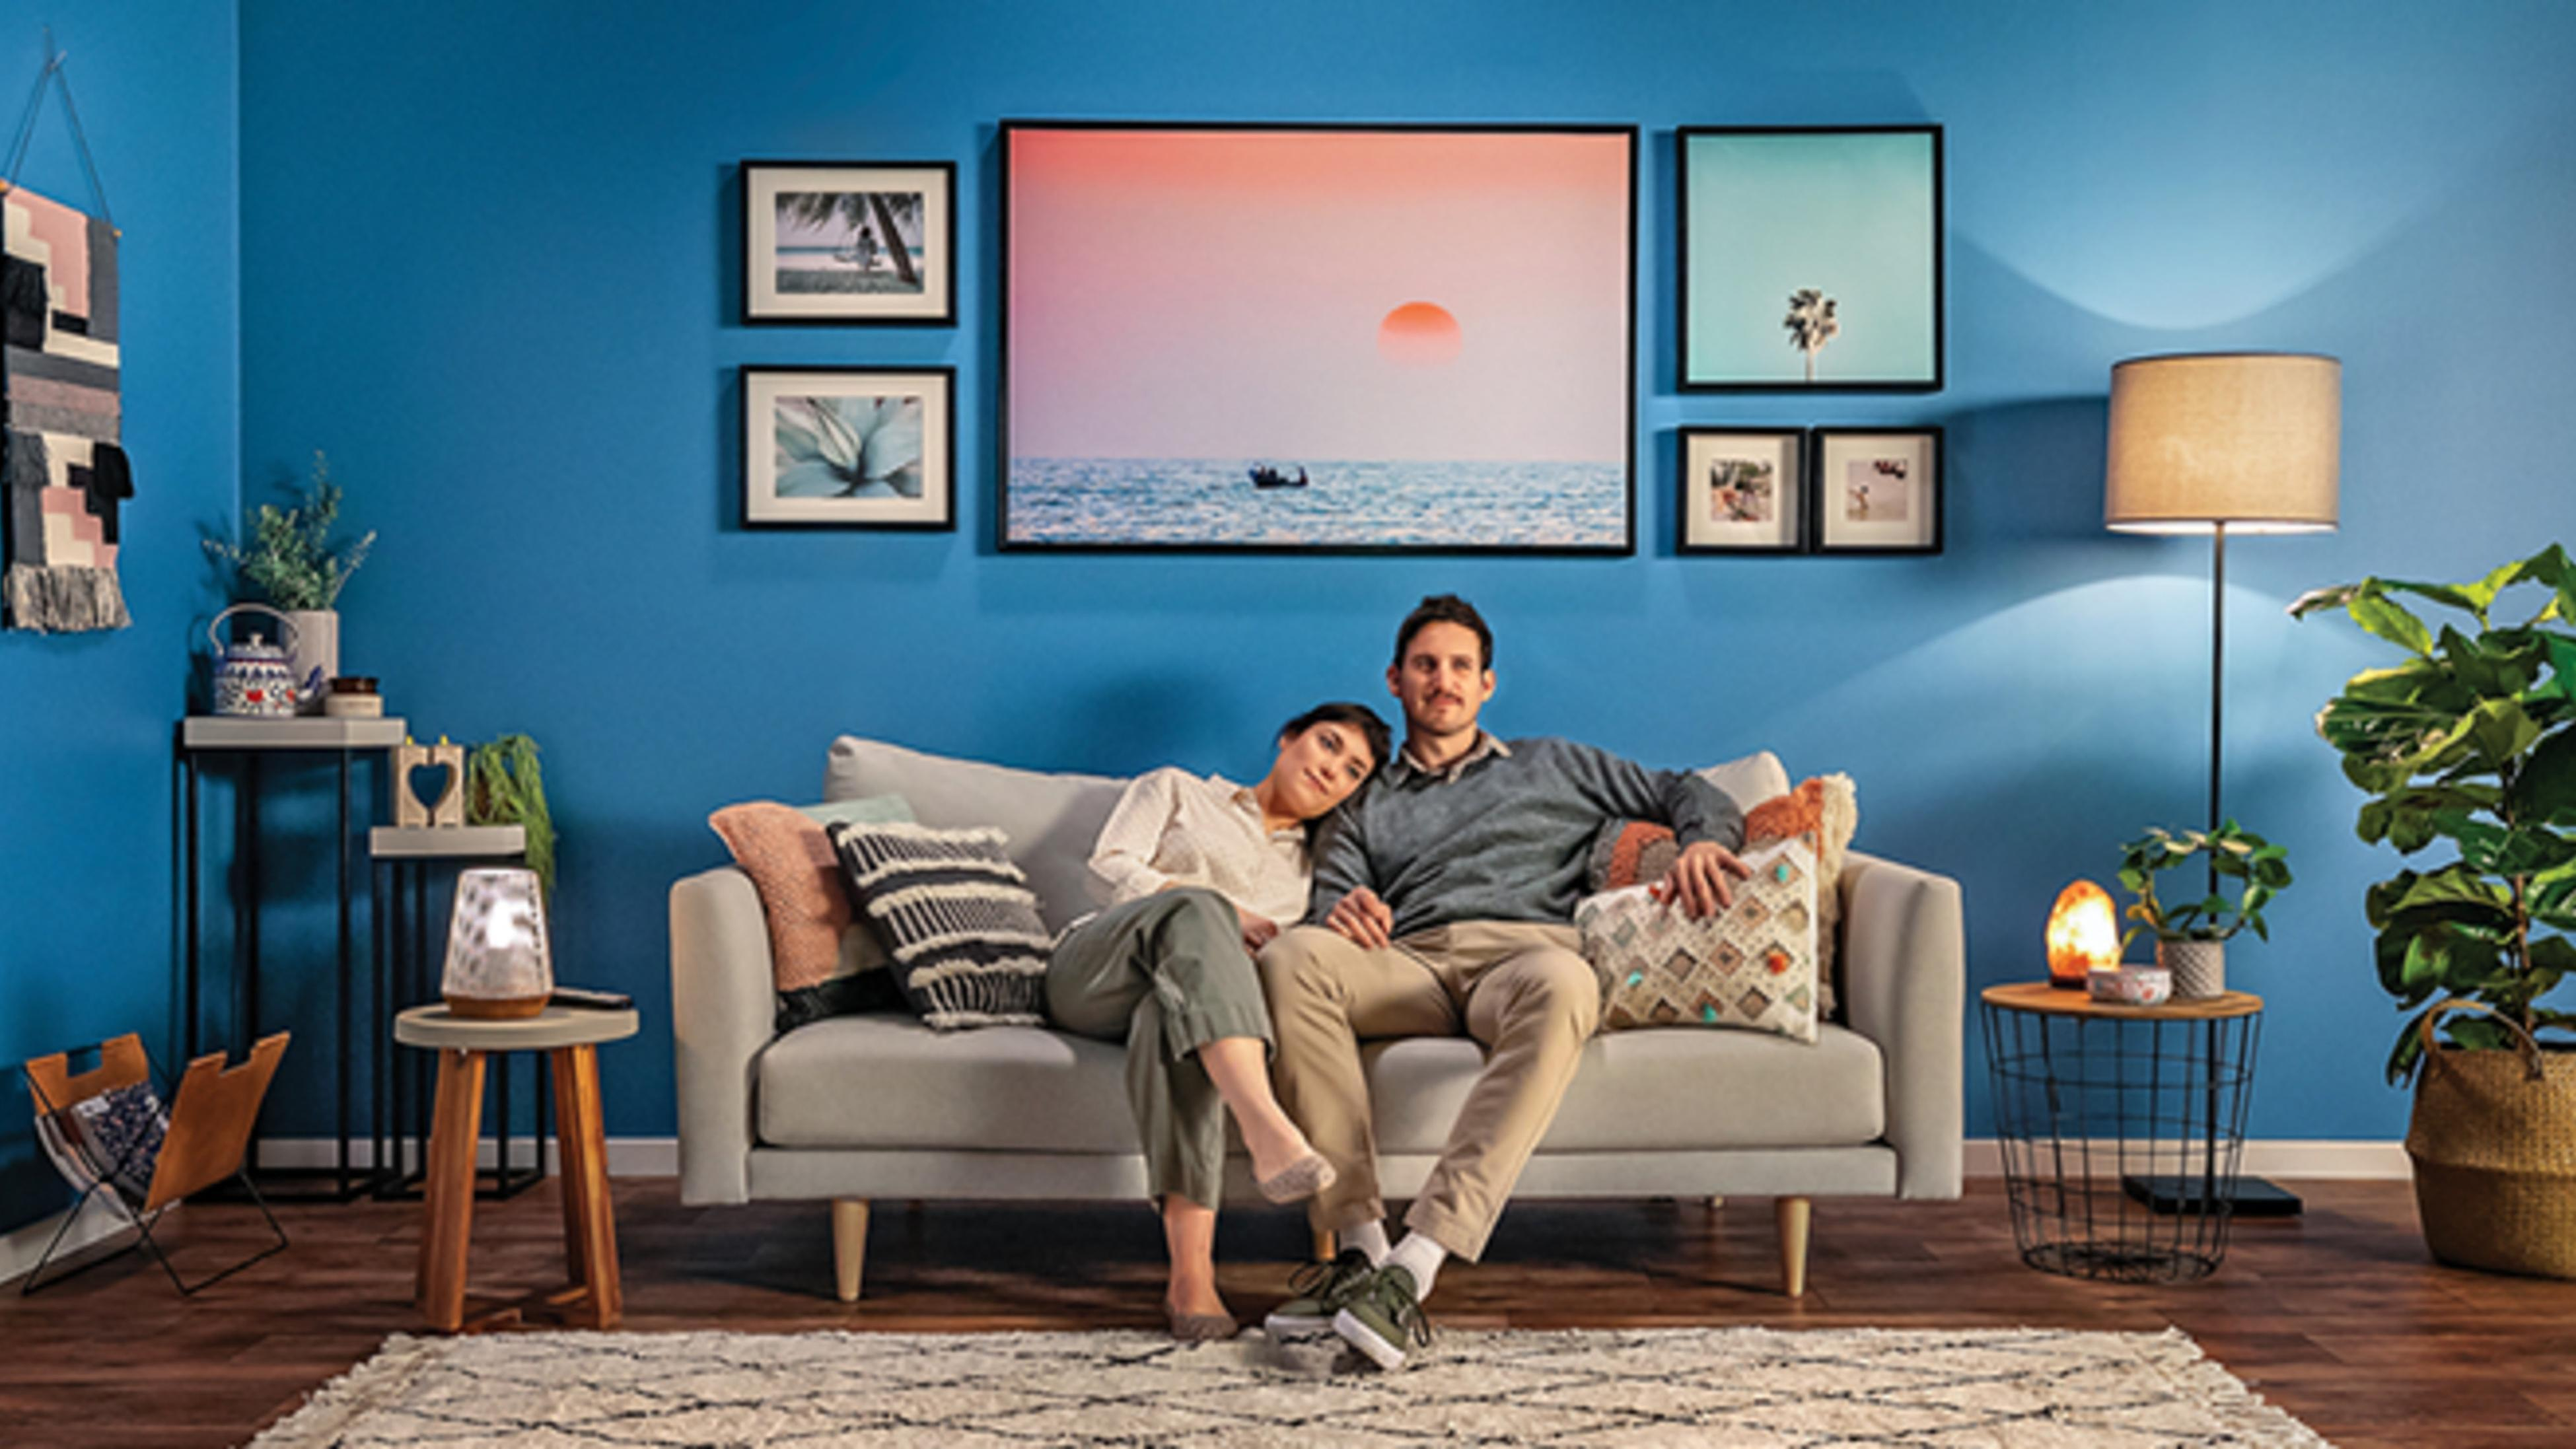 A couple sitting on a couch in a living room with blue walls, picture frames on the wall, lamps and indoor plants.